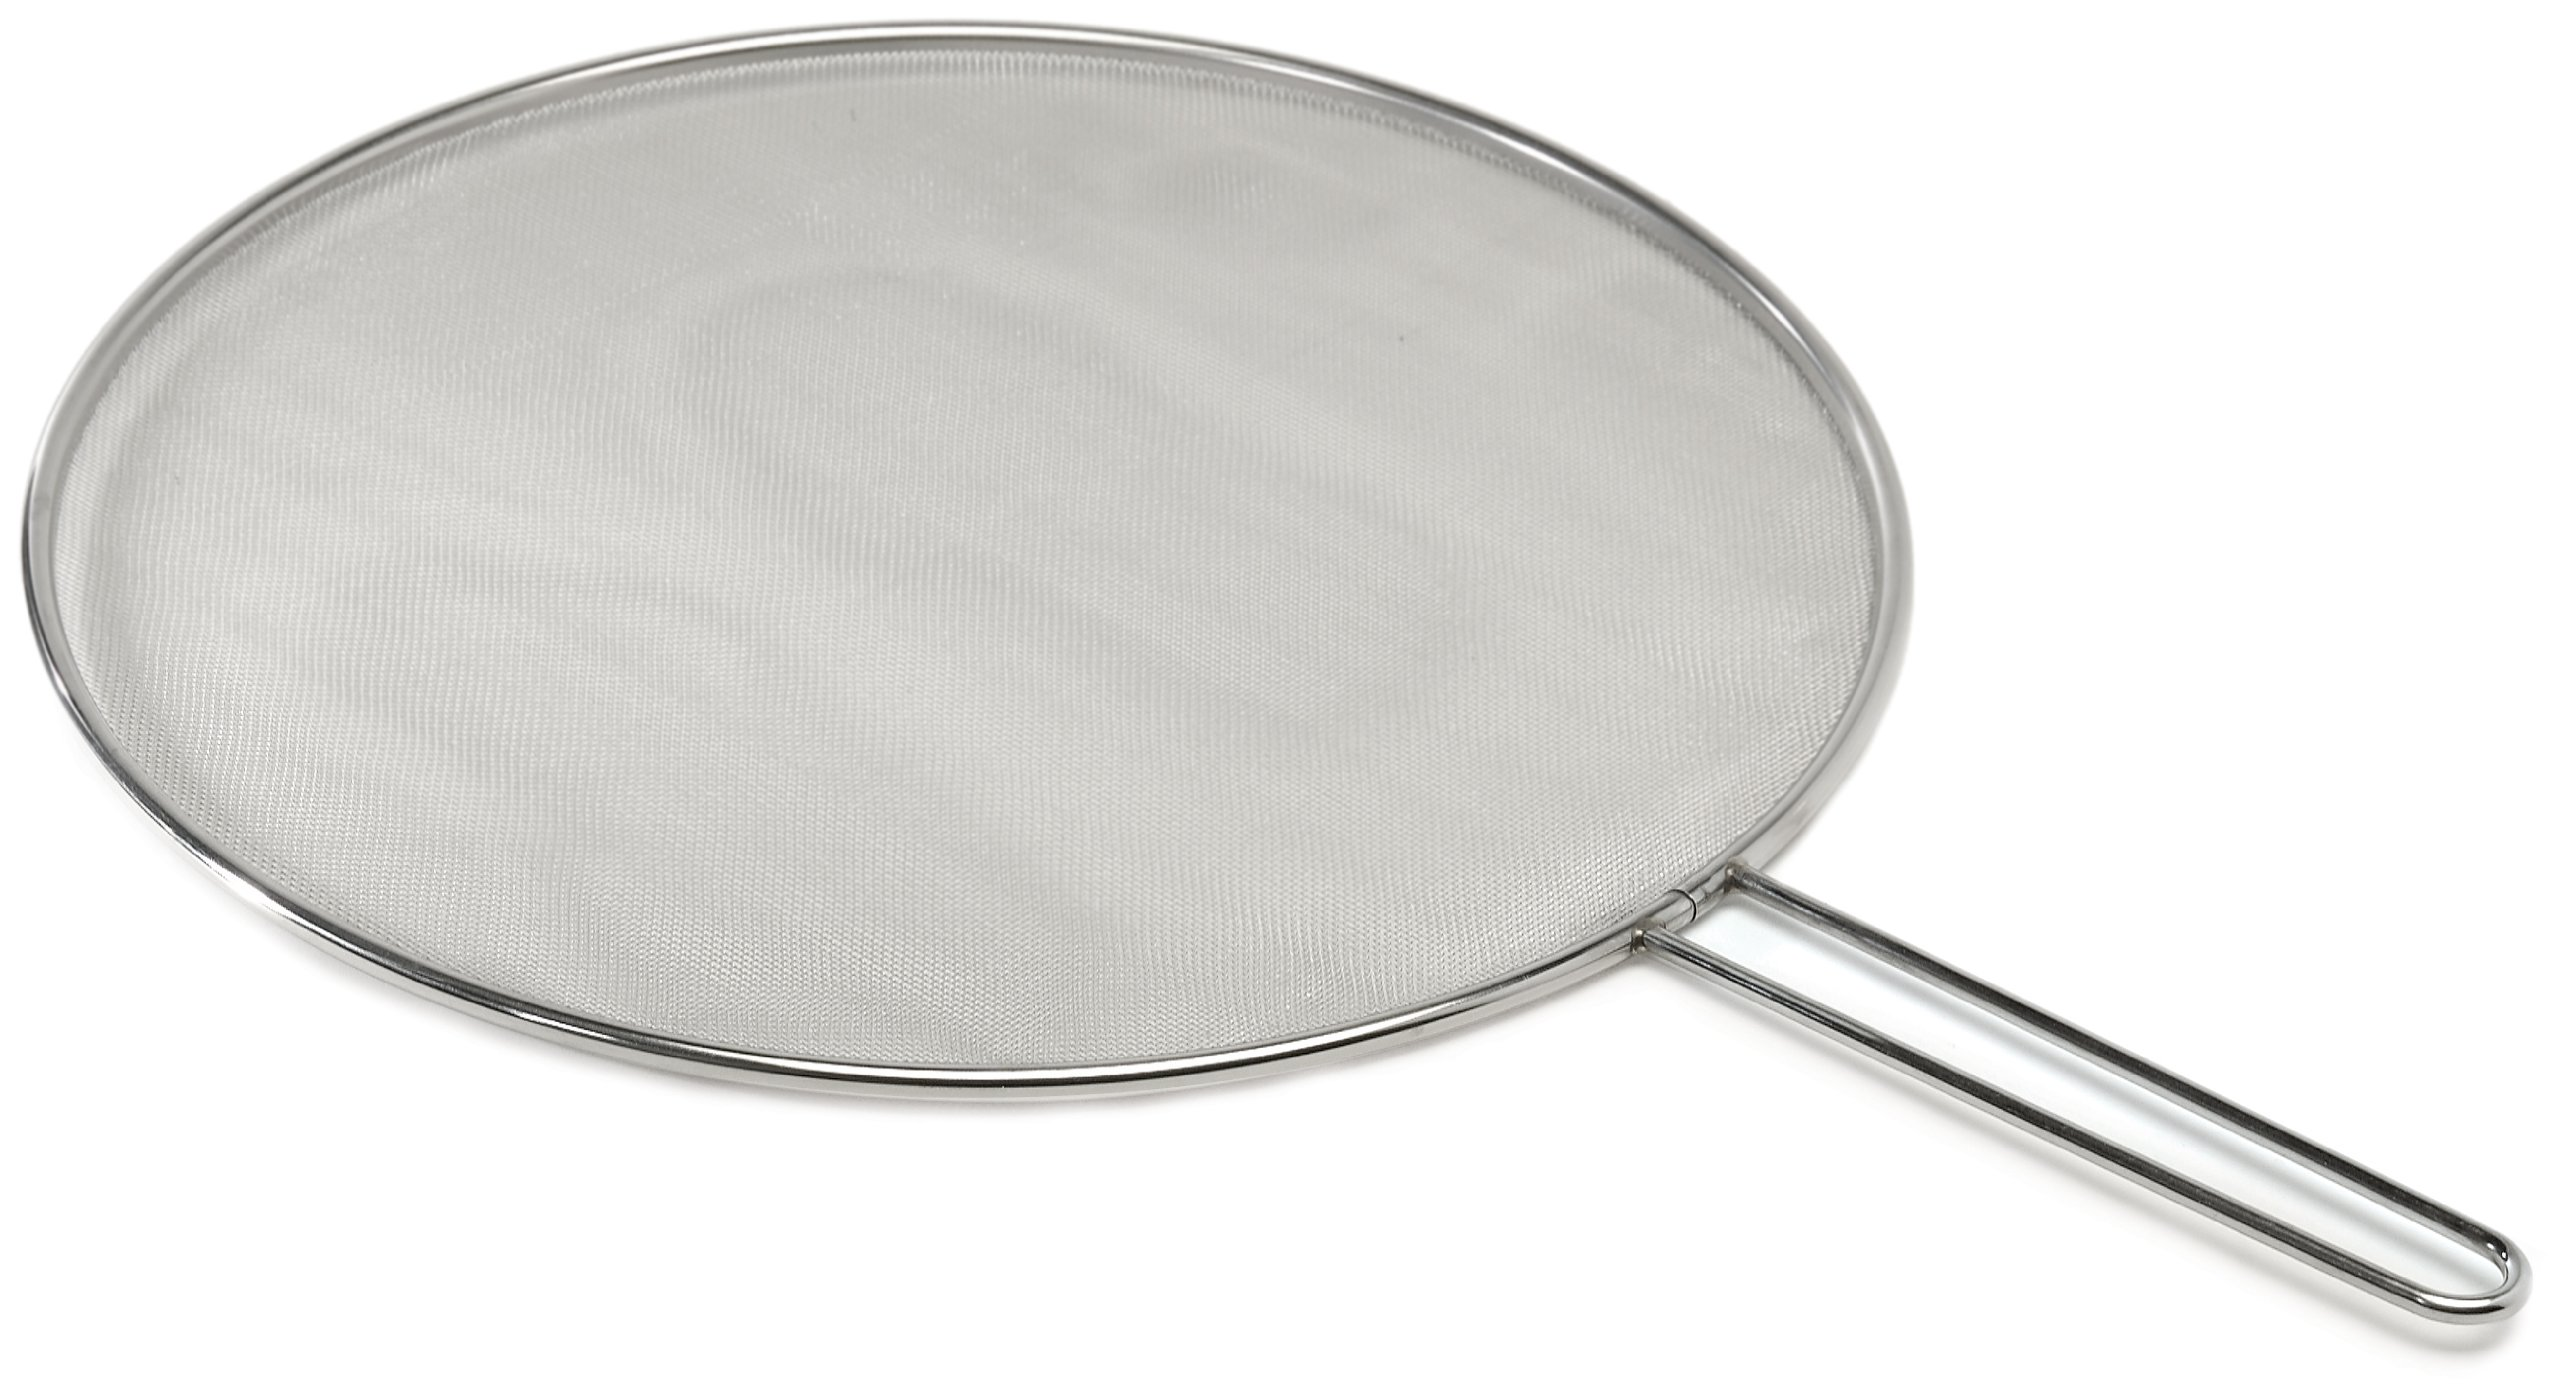 Excelsteel Stainless Steel 13-Inch Splatter Screen with Stay Cool Handle